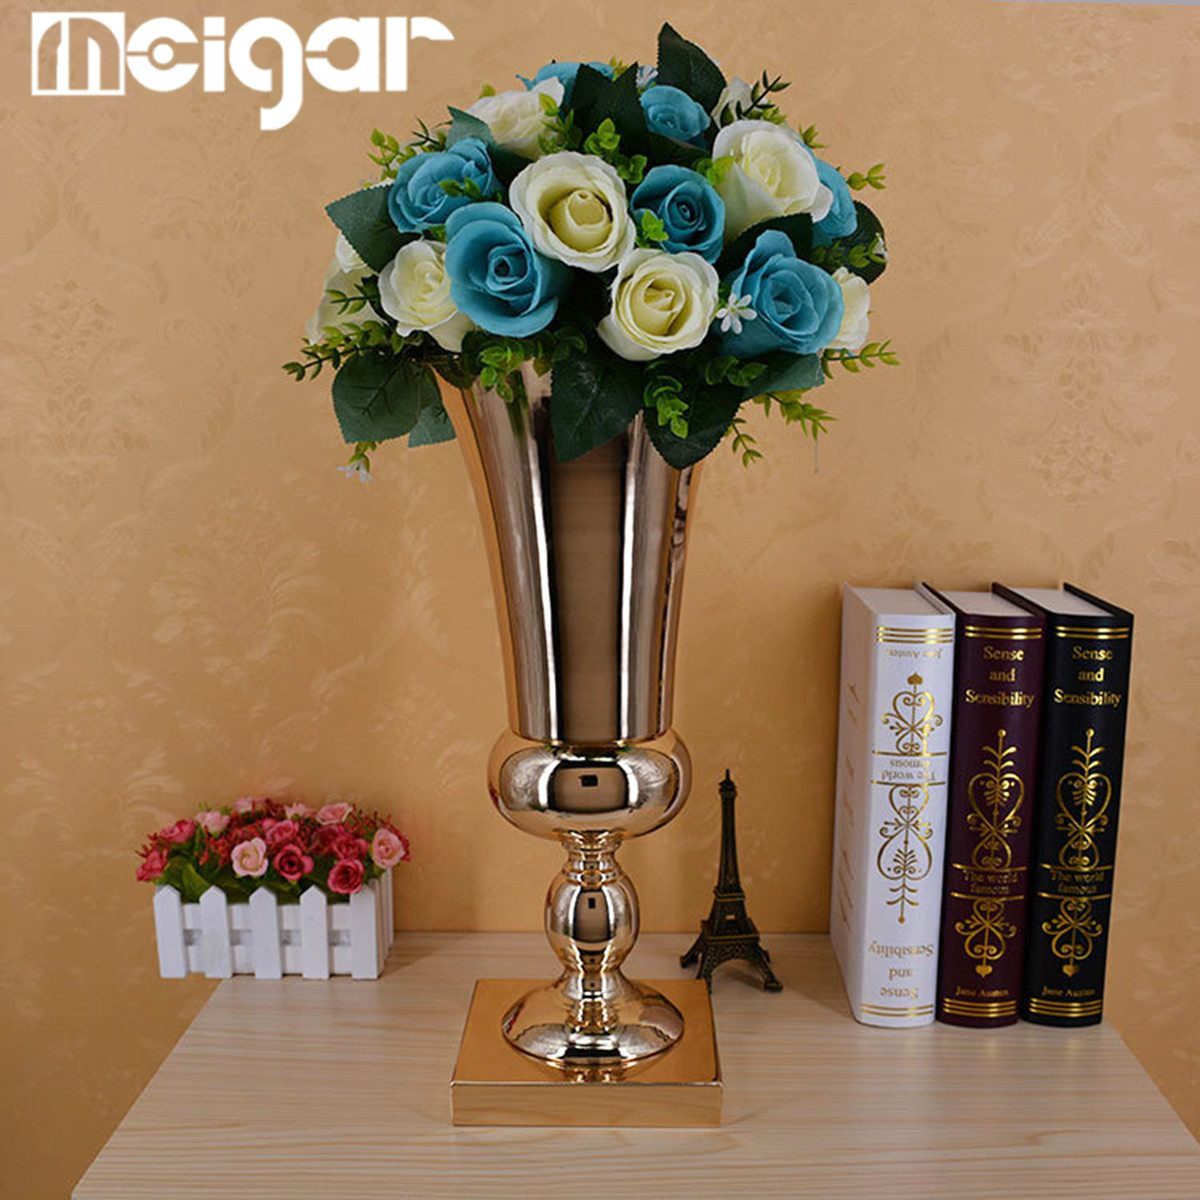 Flower Vases For Weddings: 43CM Tabletop Vase Metal Wedding Flower Vase Home Table